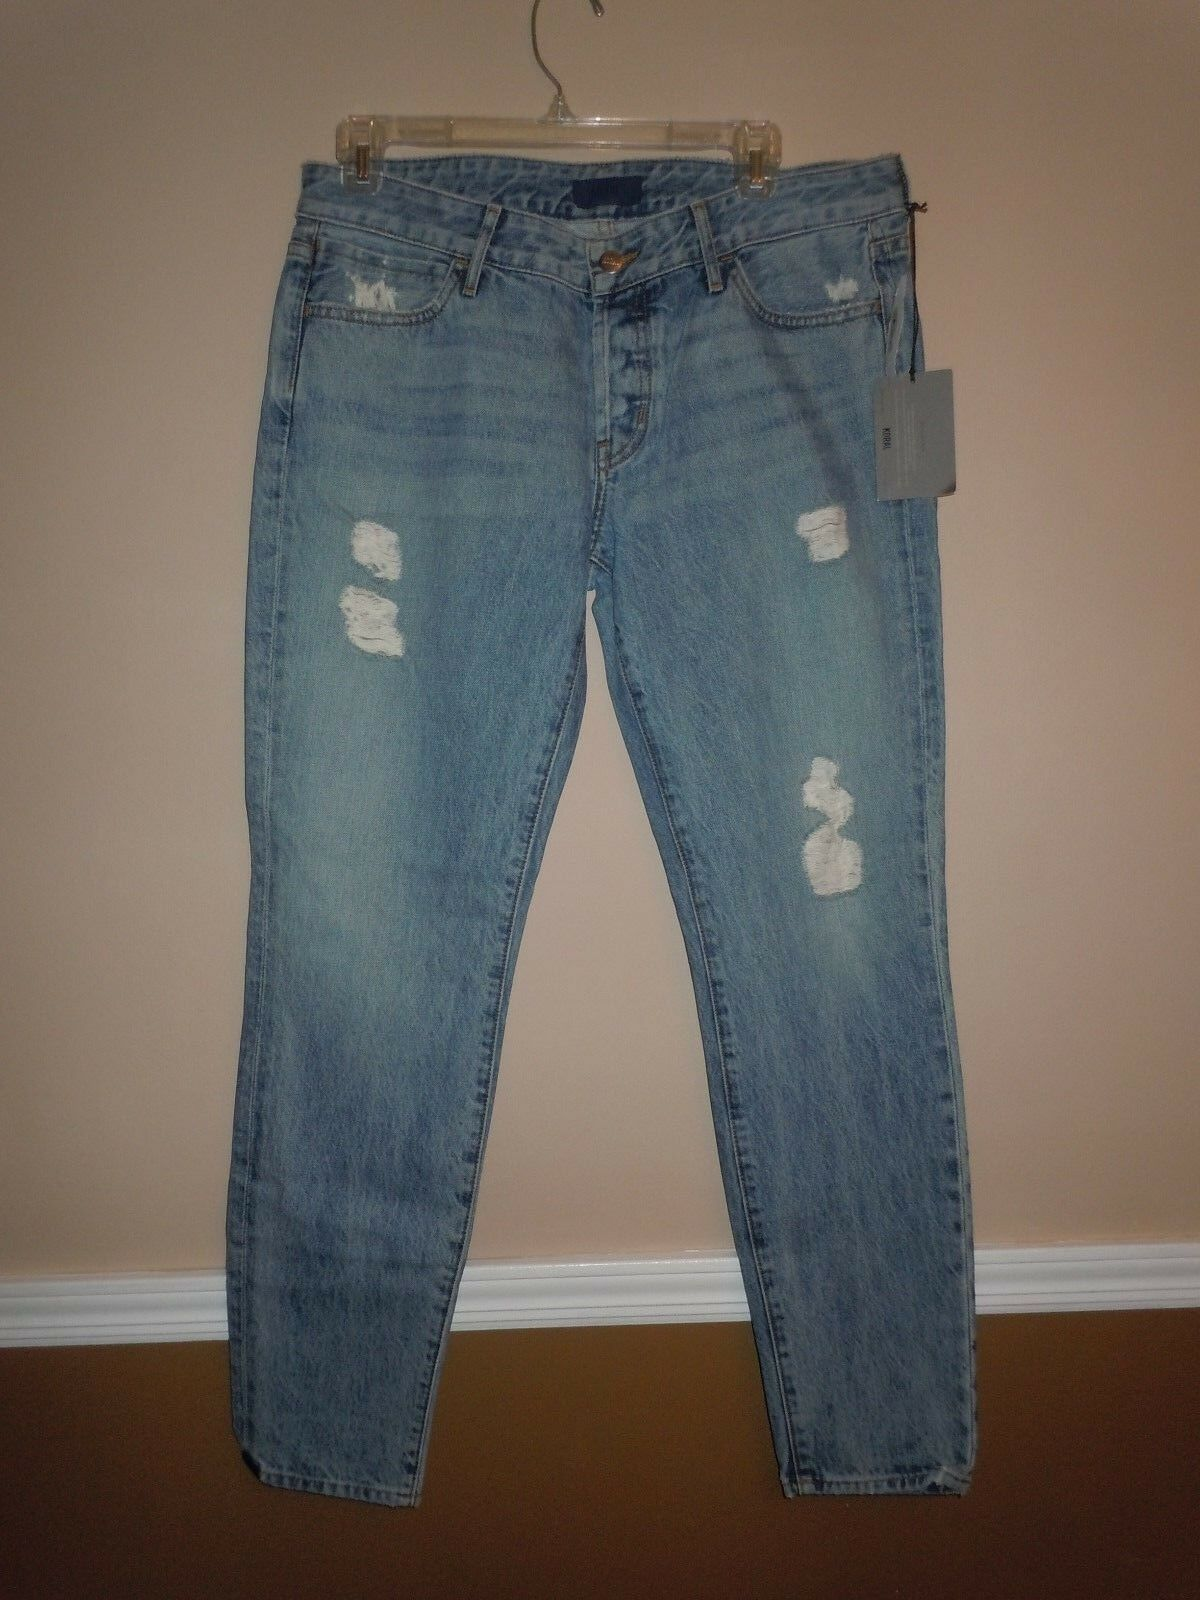 NWT Womens Koral Rigid Relaxed Skinny bluee Ripped Ankle Jeans  Size 28